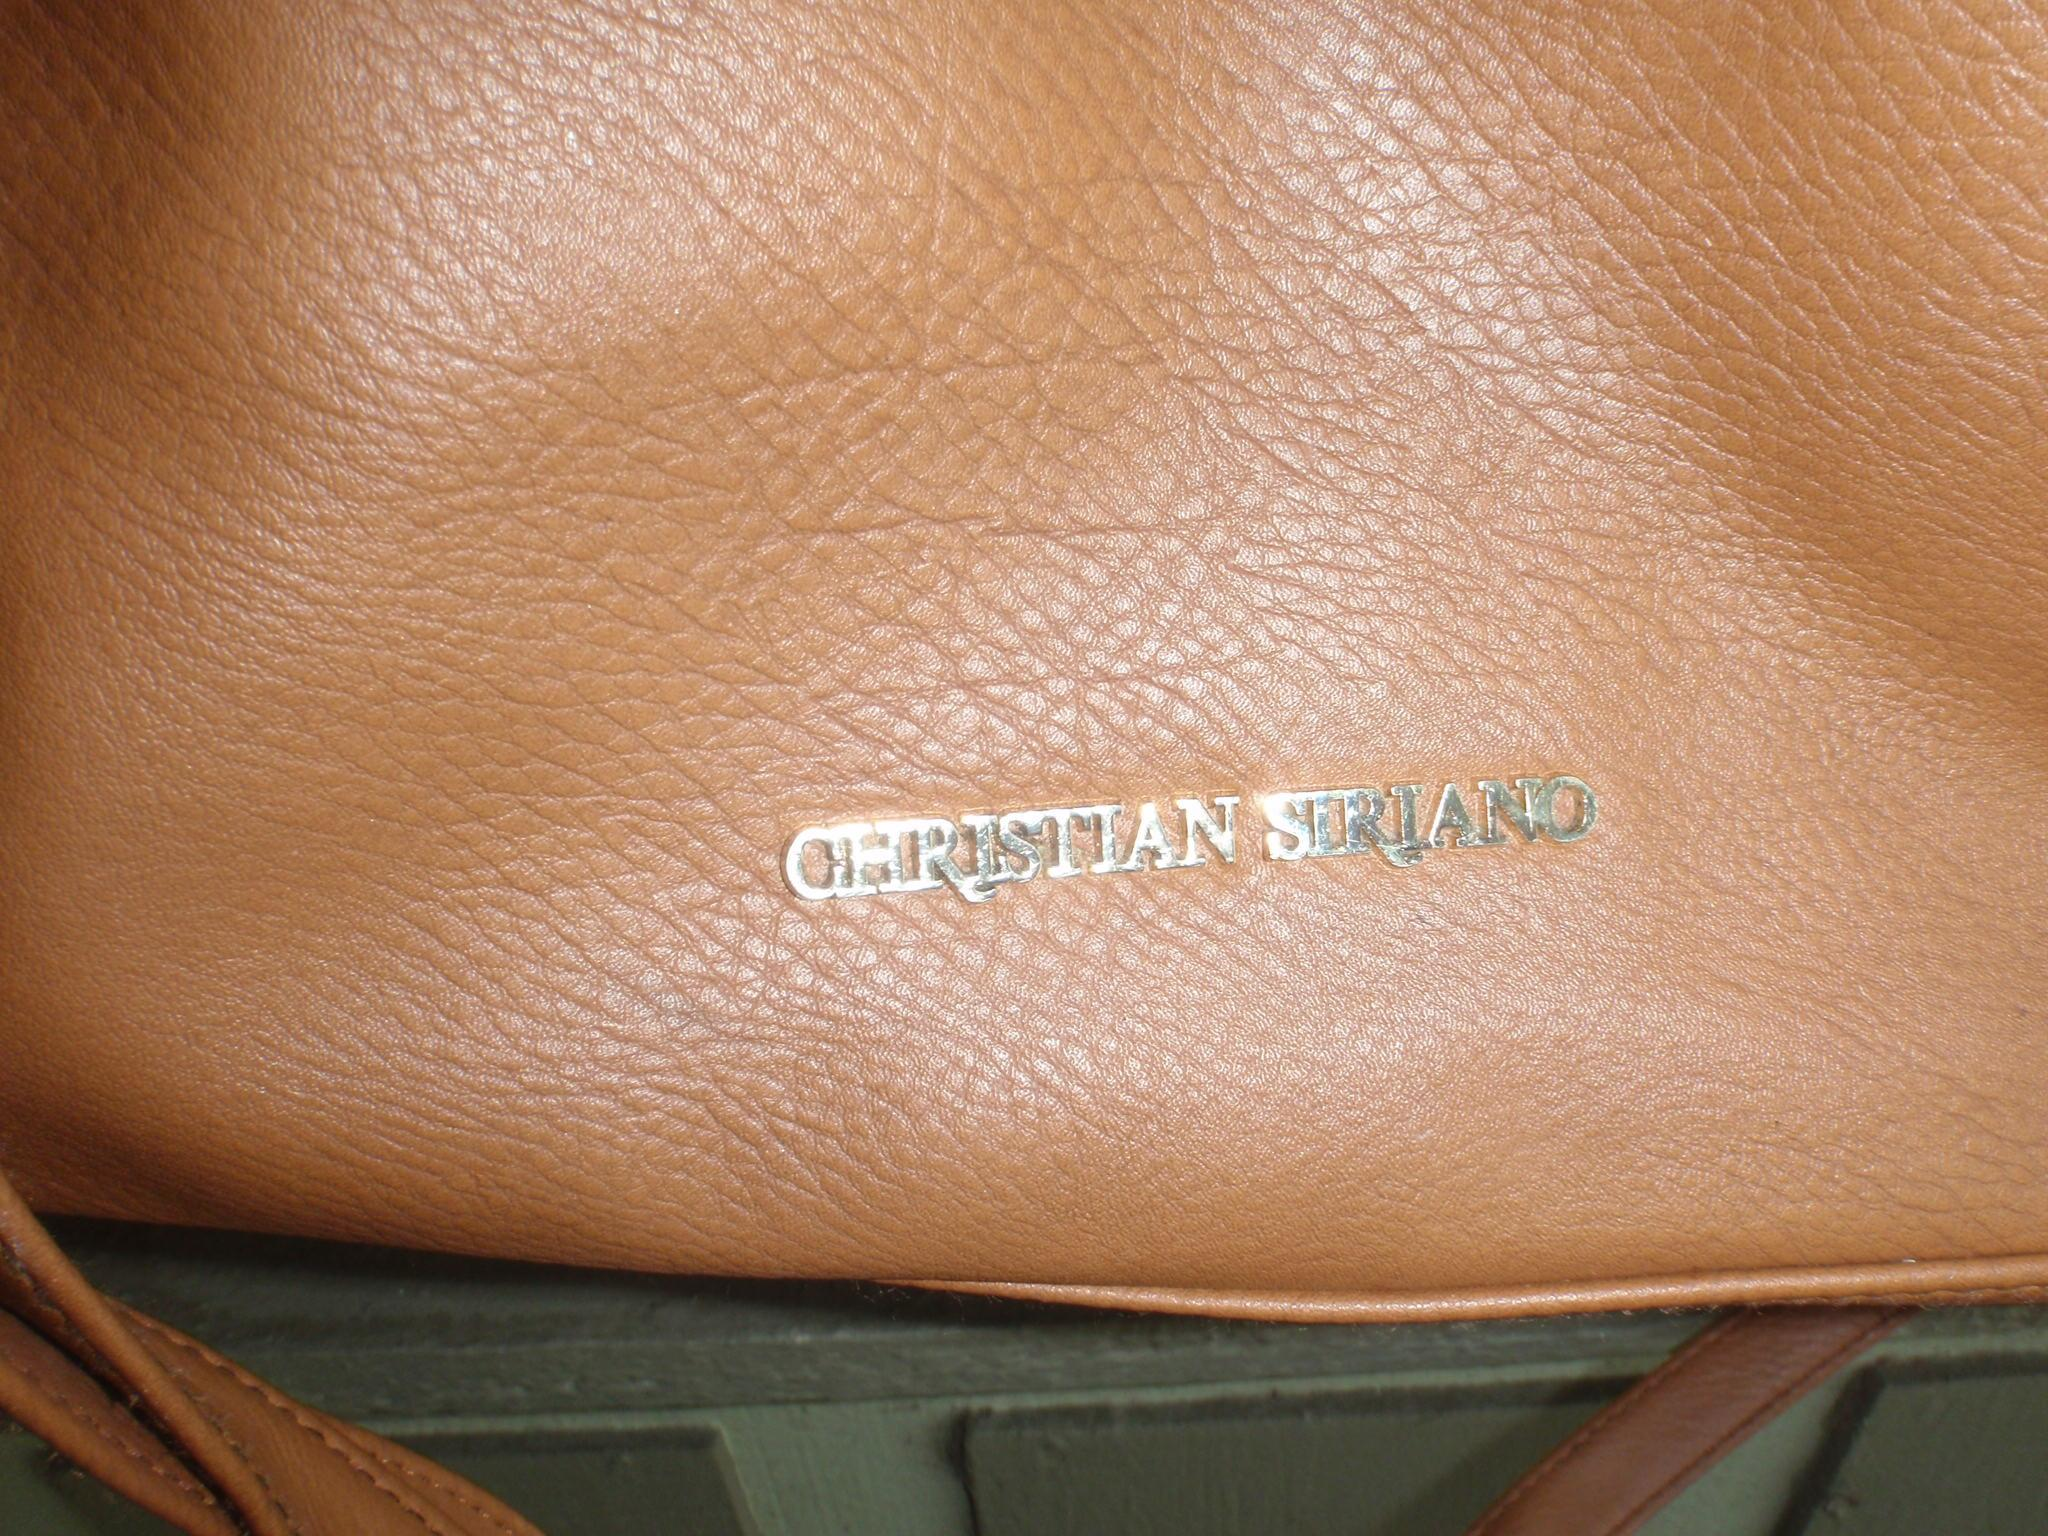 4af35a21c45 louboutin bags on sale christian shoes payless